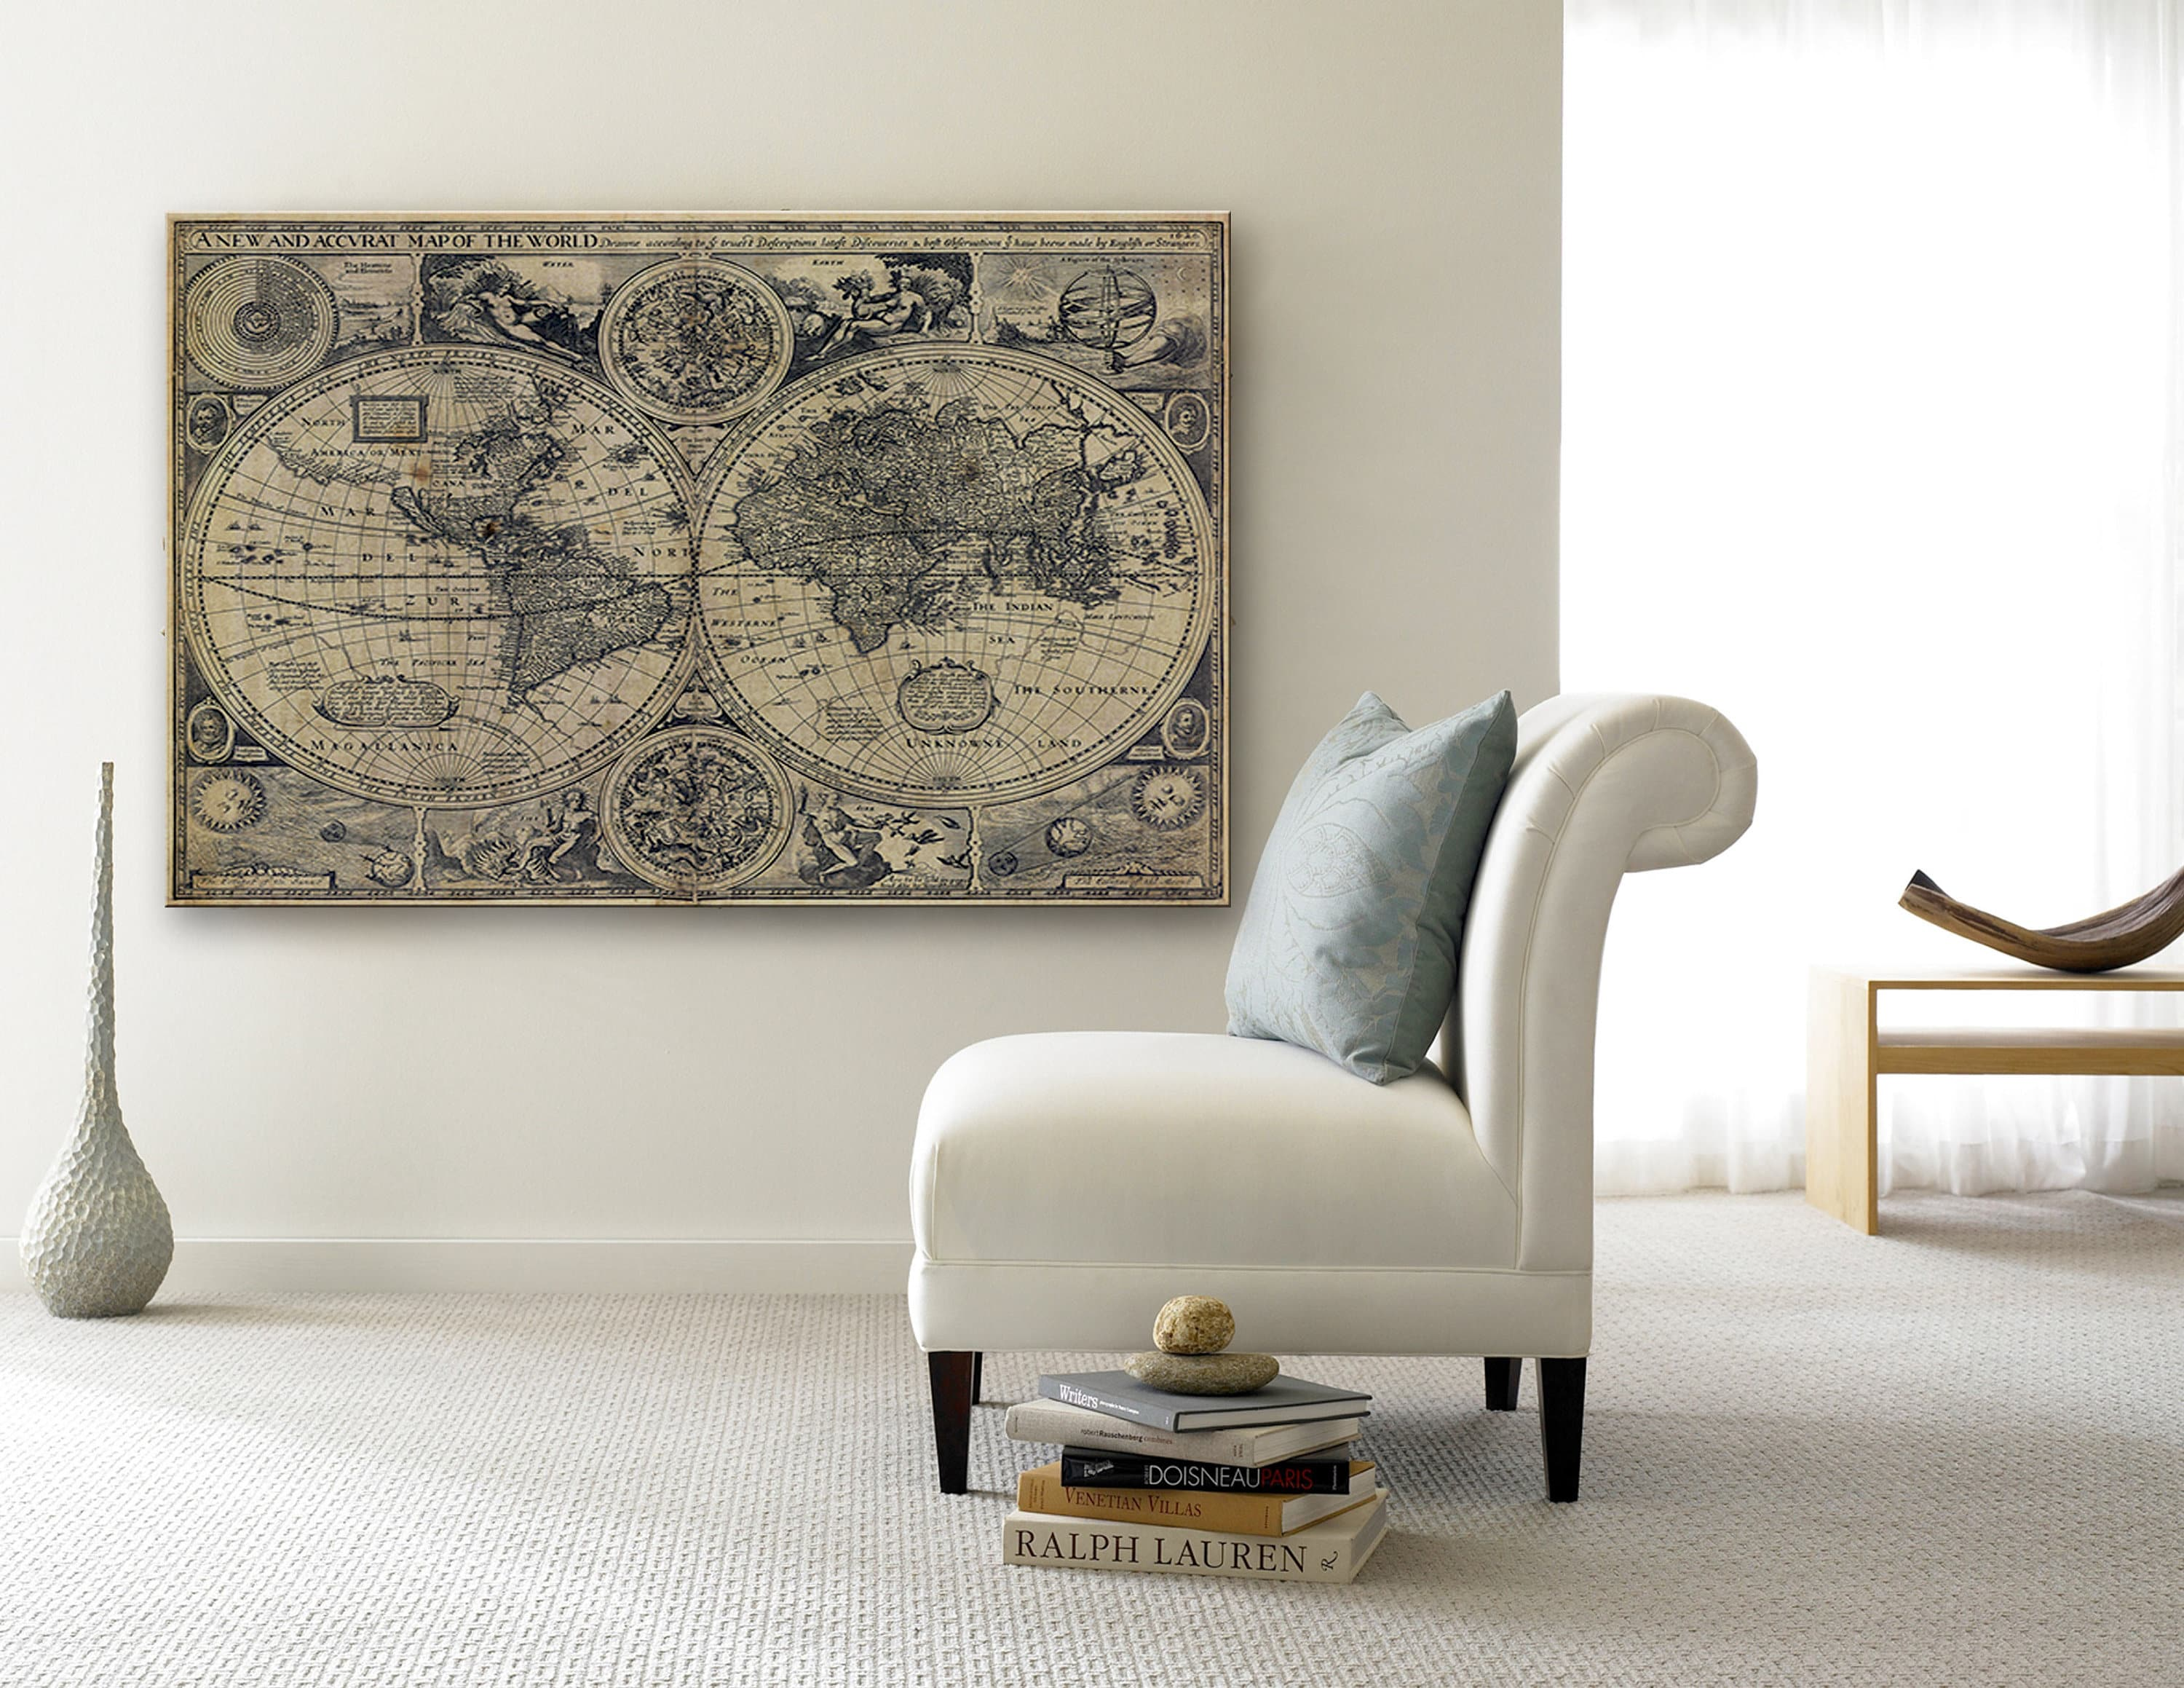 A New And Accvrat Map Of The World 1626.Huge Historic 1626 Old World Map Antique Restoration Decor Style